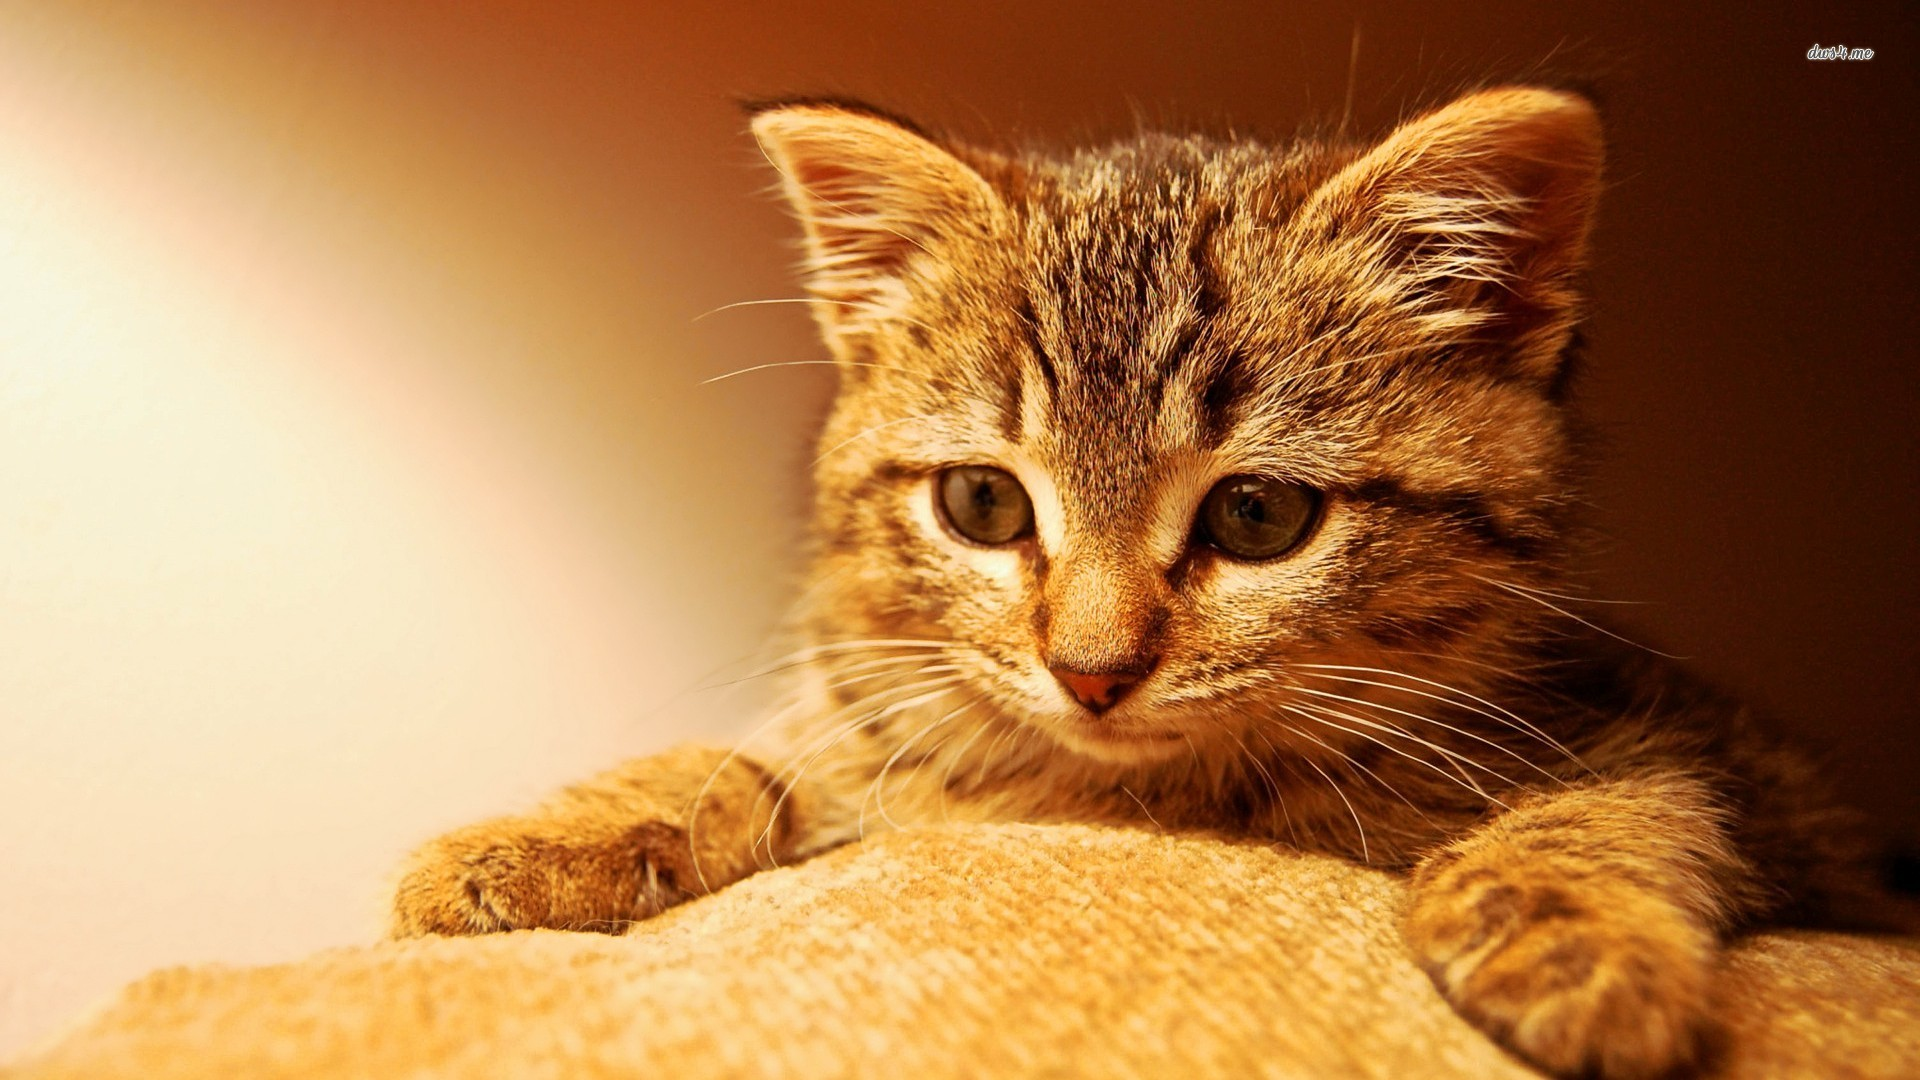 Cute Kitten Wallpapers   1920x1080